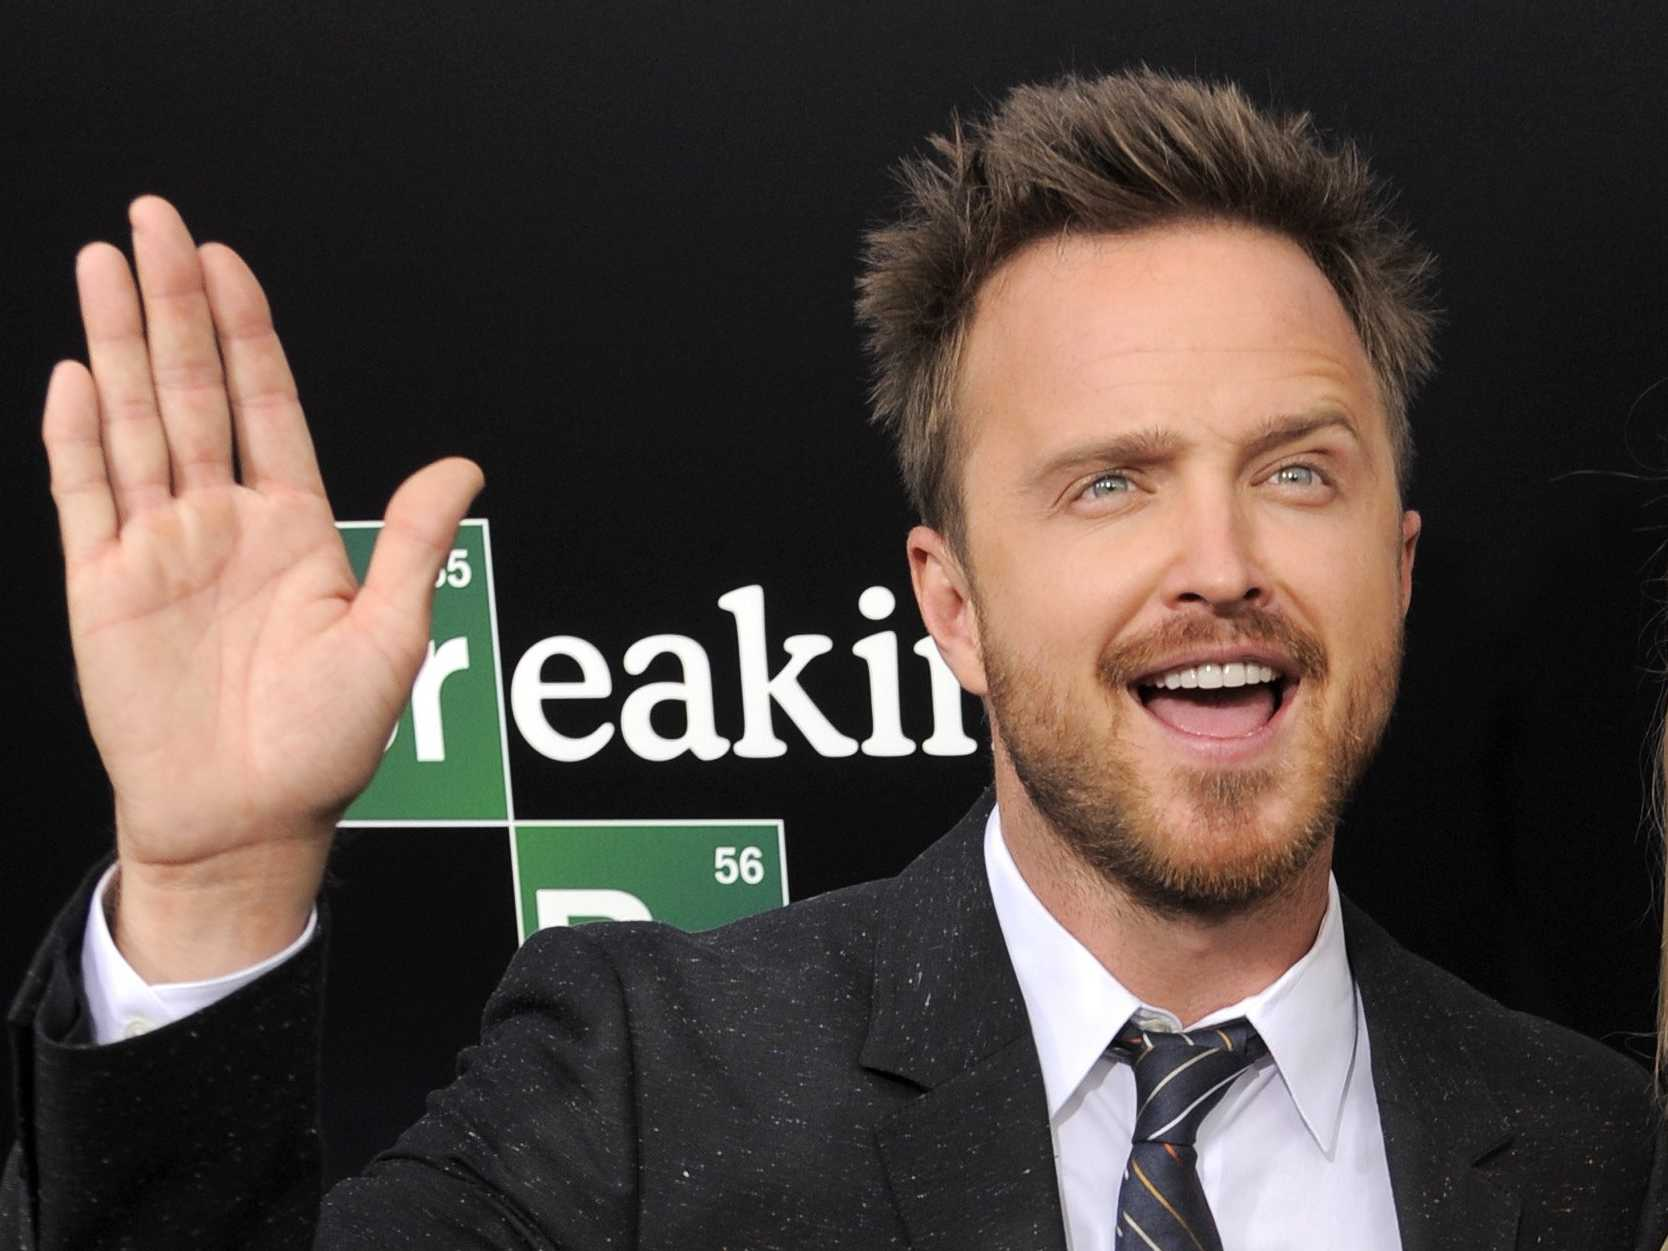 Breaking Bad's Aaron Paul Just Dropped a Yo App Spinoff